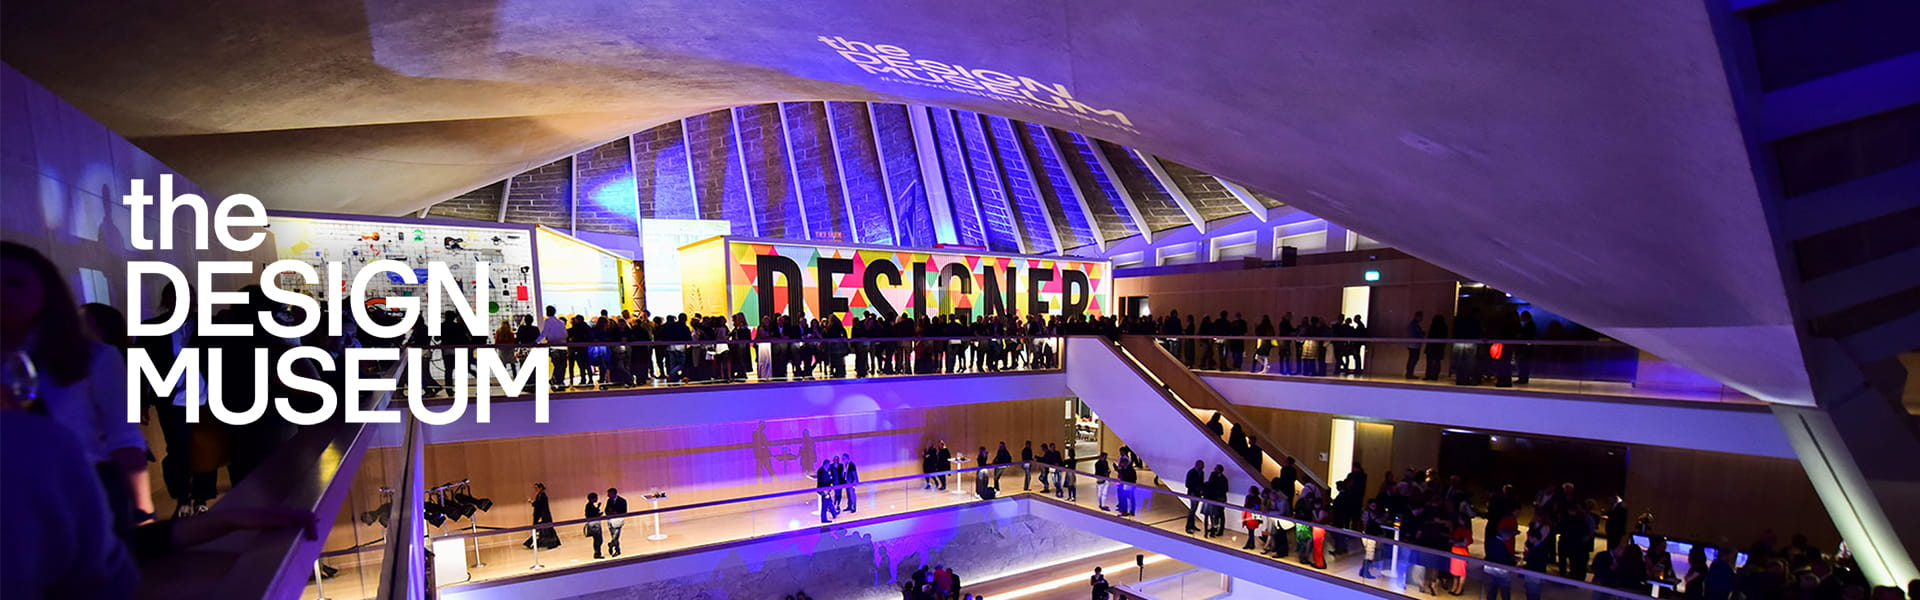 The Design Museum in Kensington, London